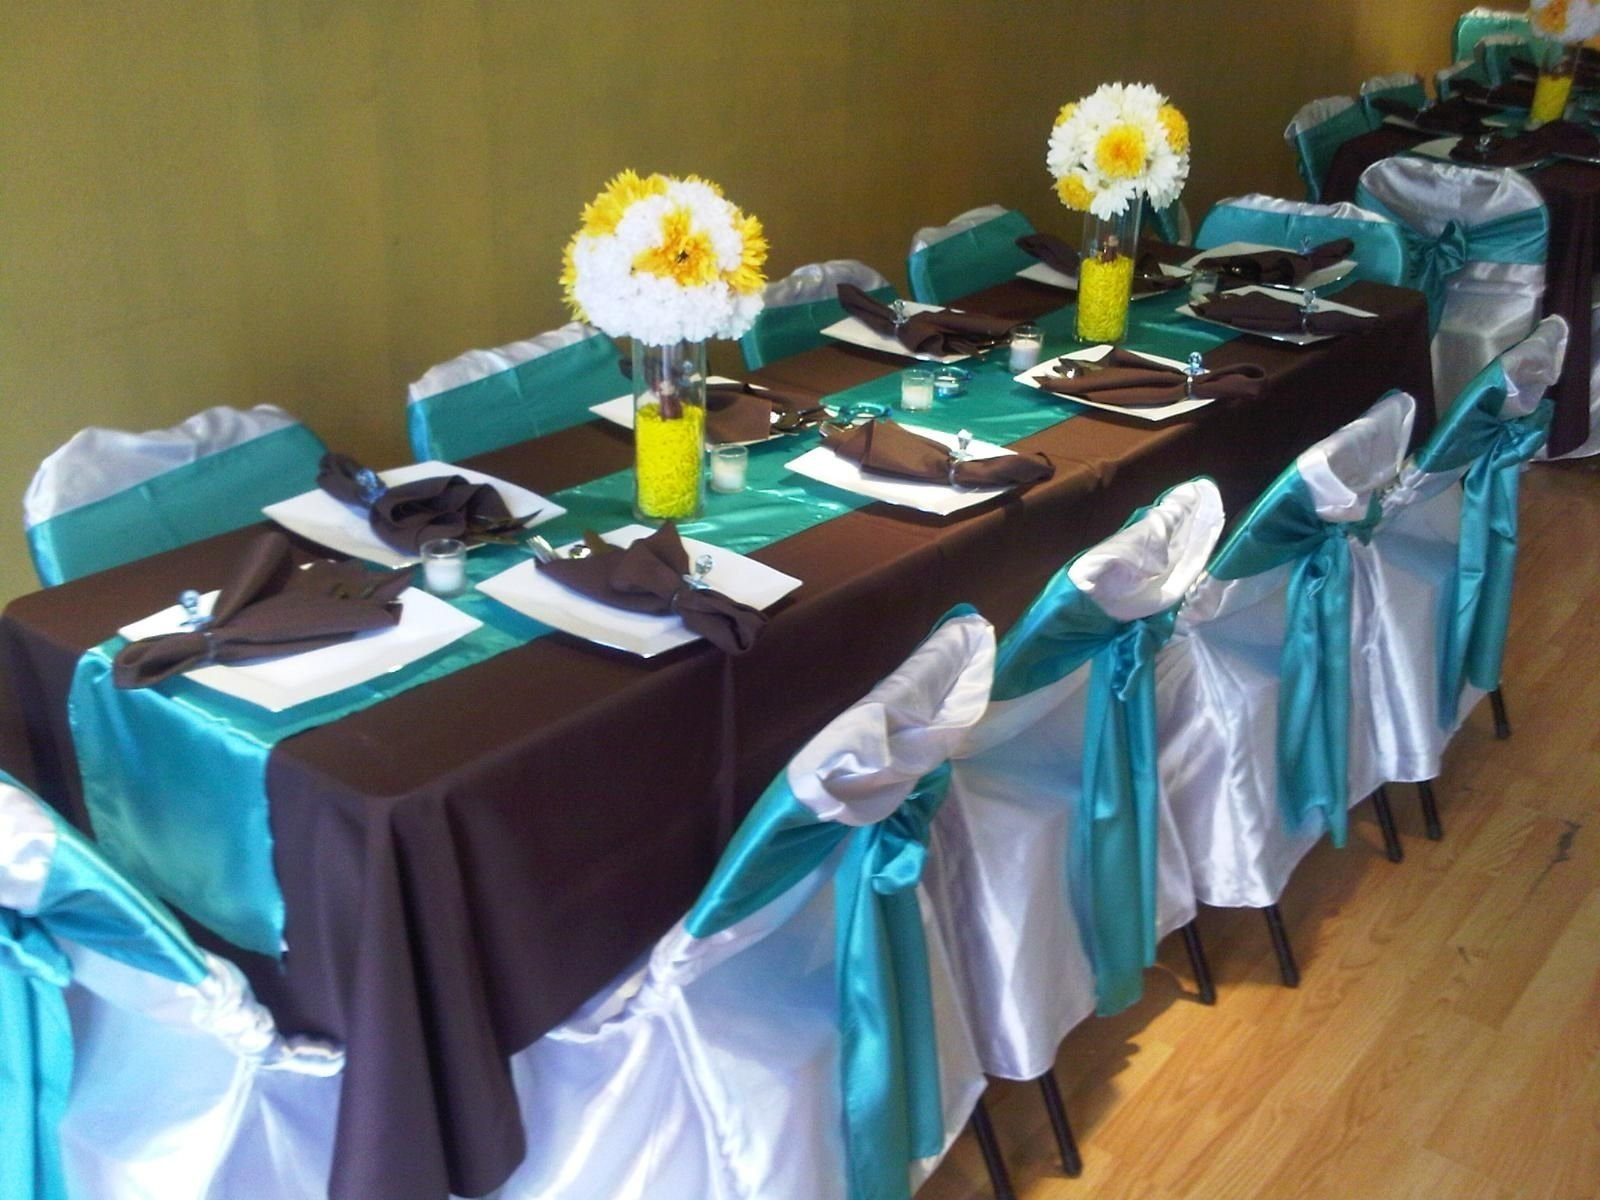 10 Perfect Brown And Blue Baby Shower Decorating Ideas inexpensive baby shower ideas baby shower centerpiece ideas